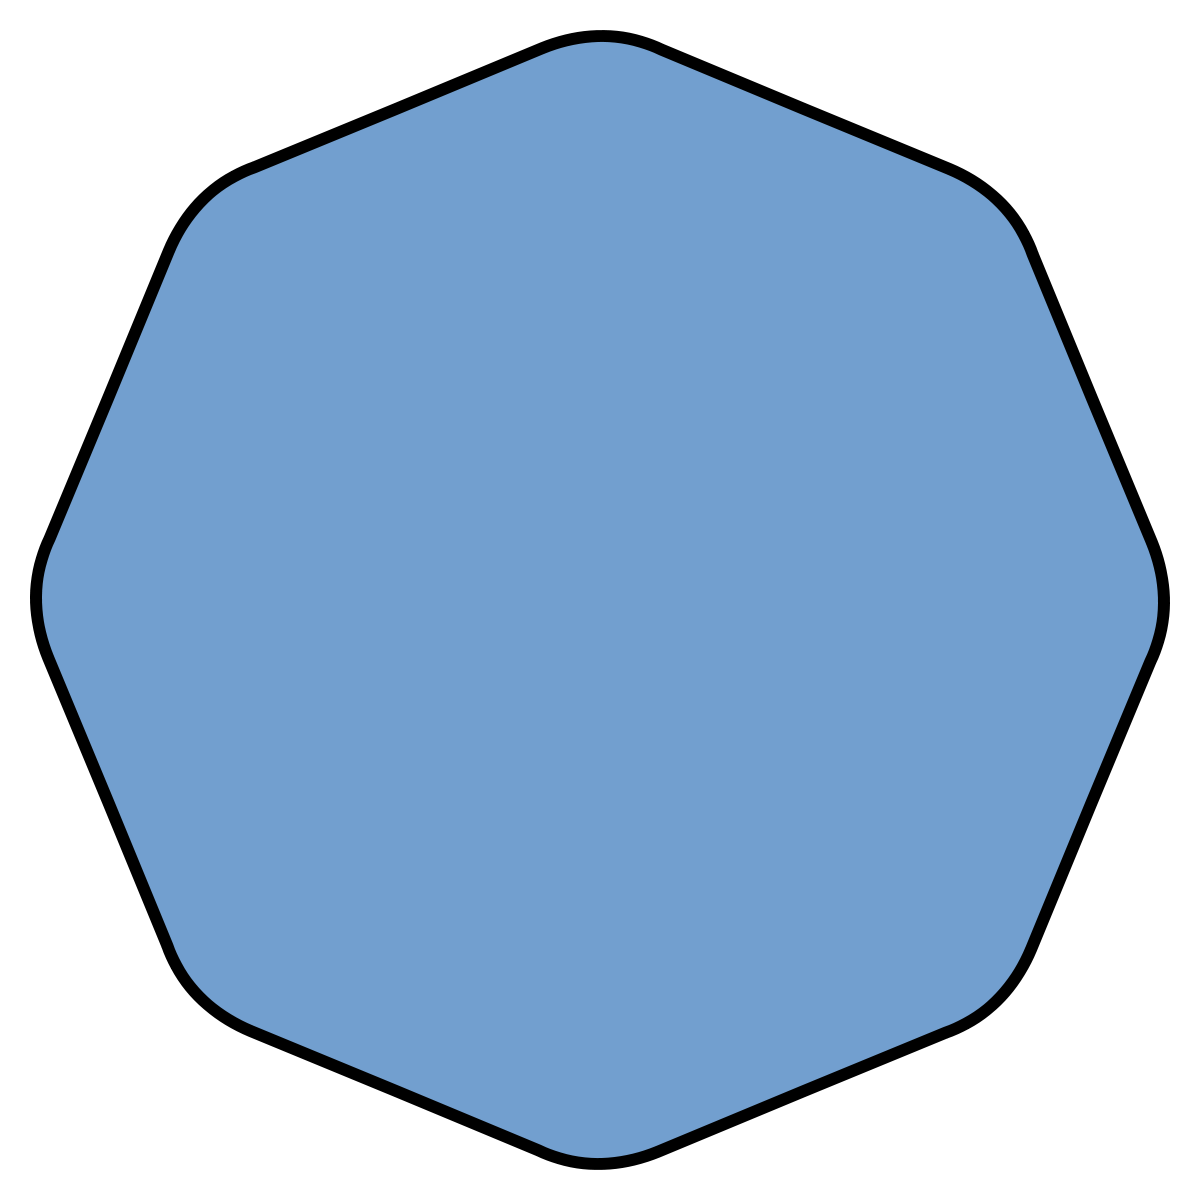 Octagon transparent figure. Smoothed wikipedia